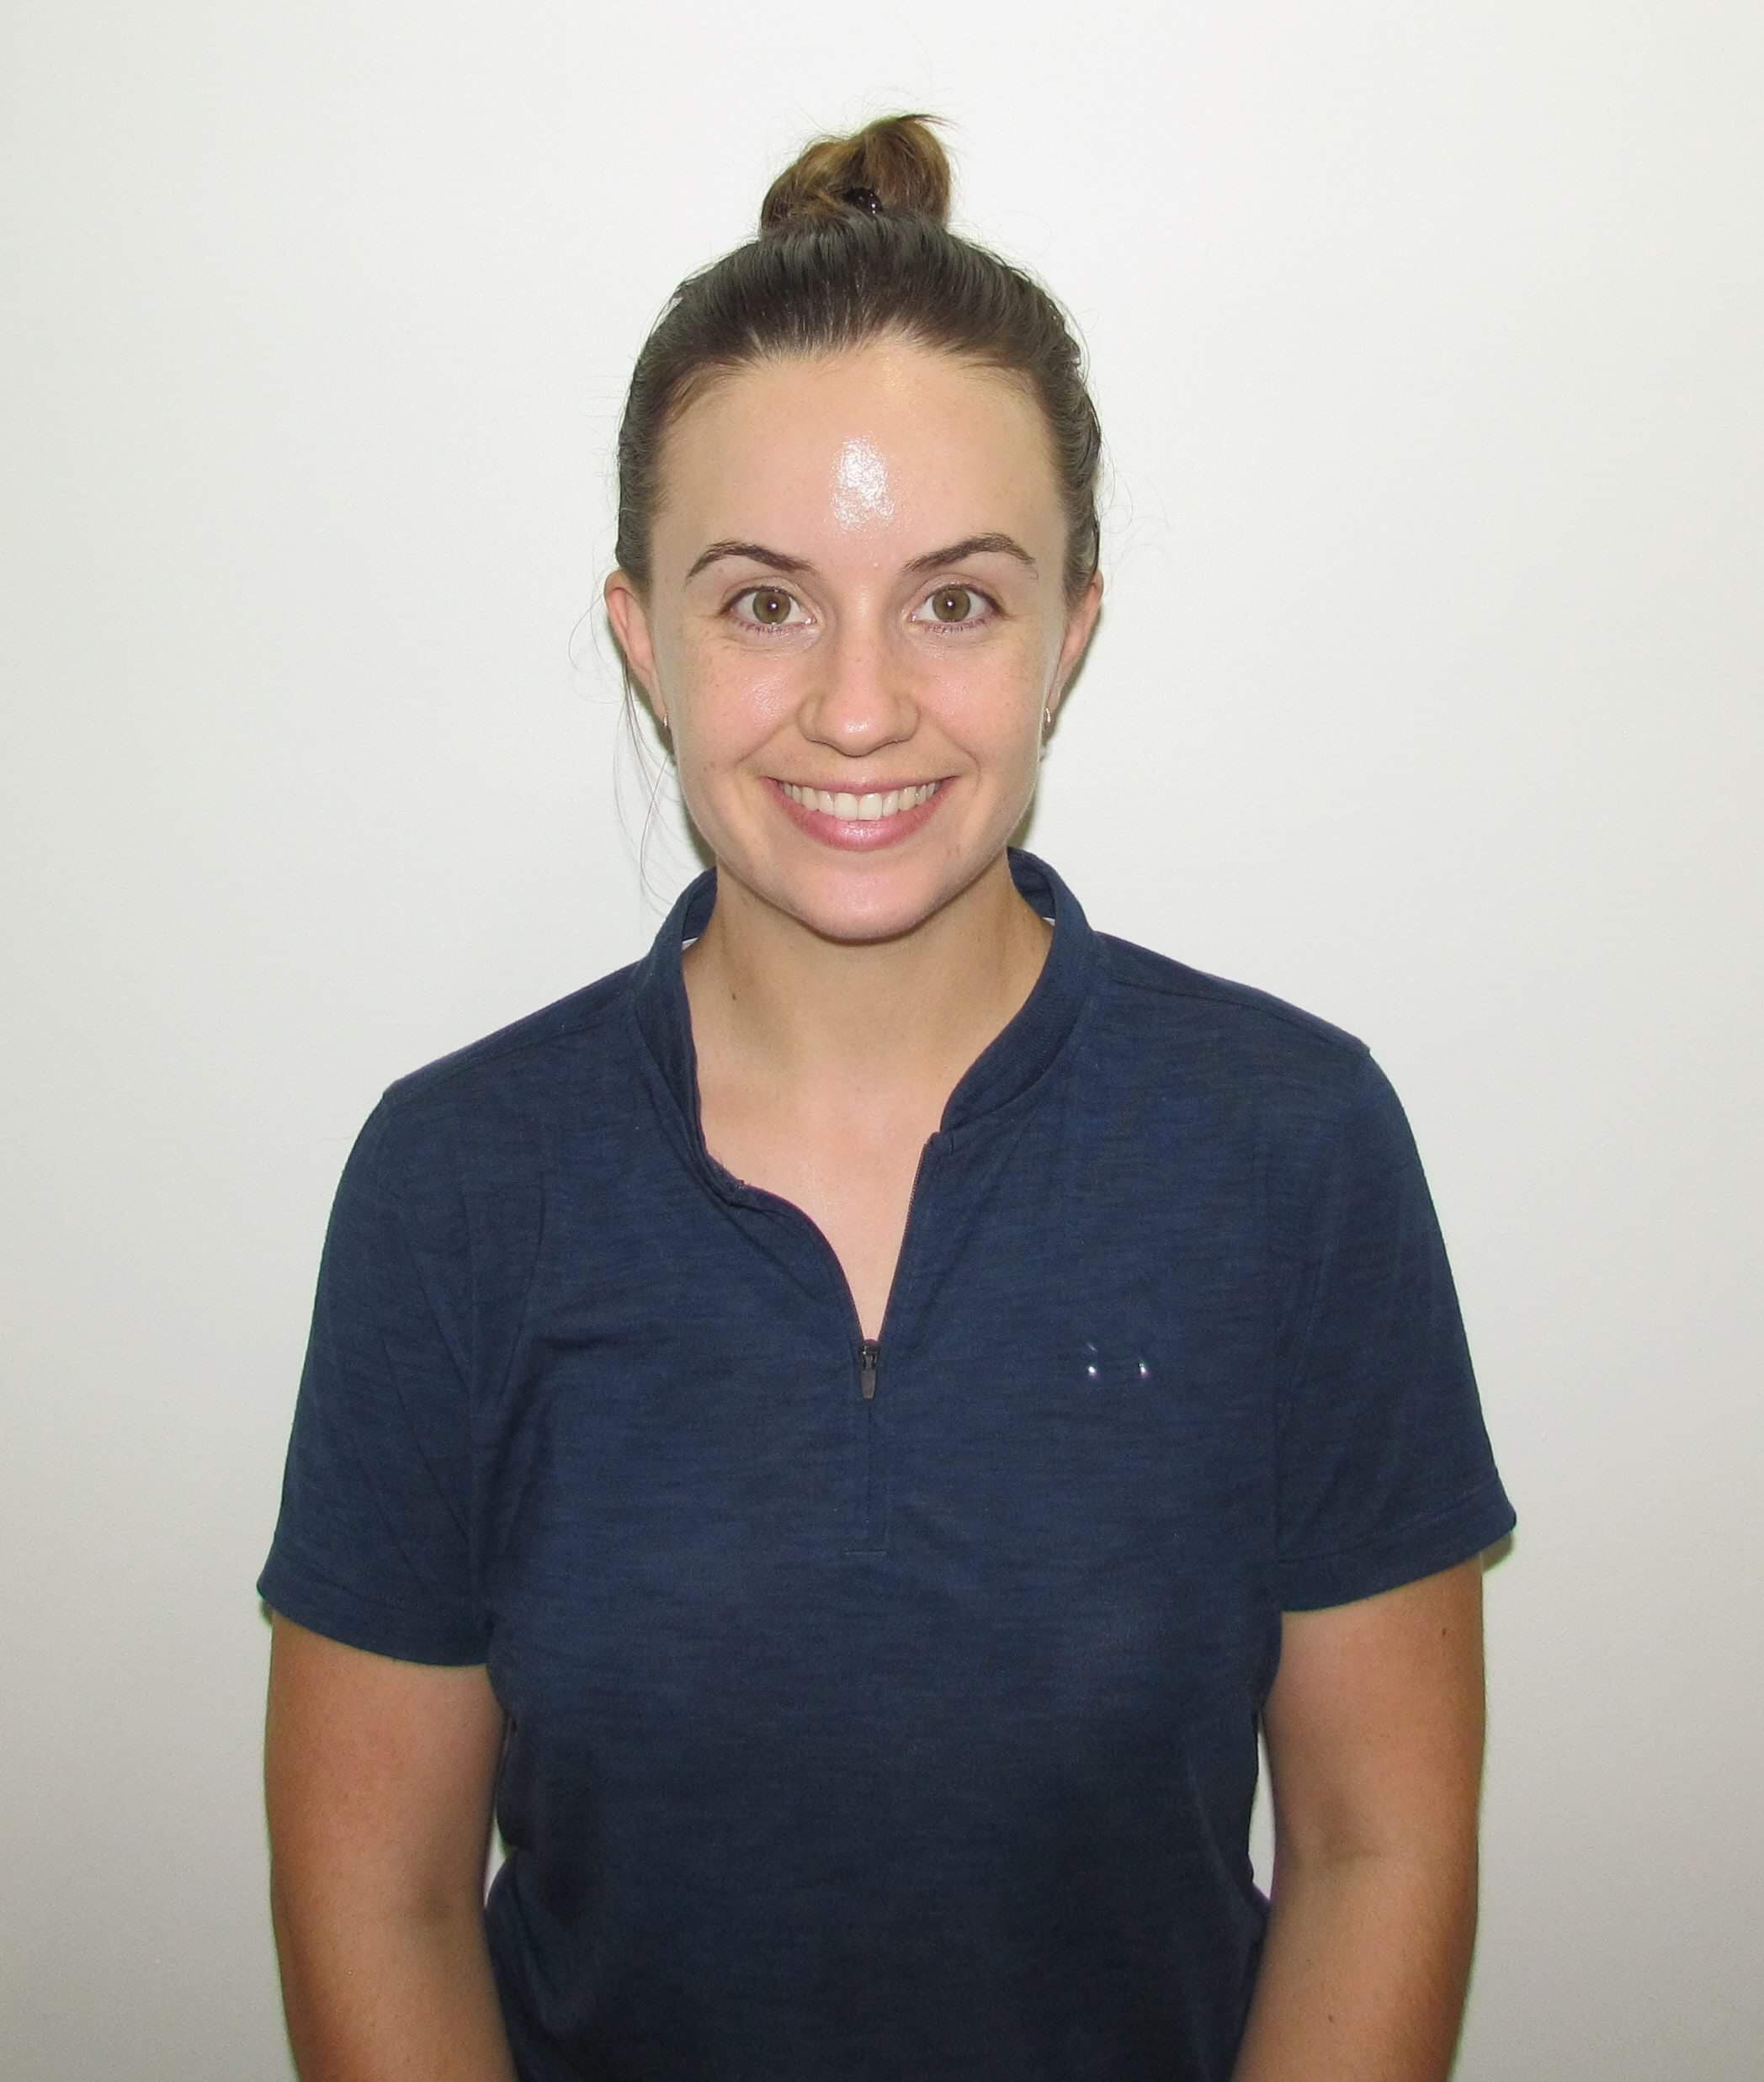 Haley Crew, Physiotherapist at Restore Function Physiotherapy and Pilates in Greenslopes